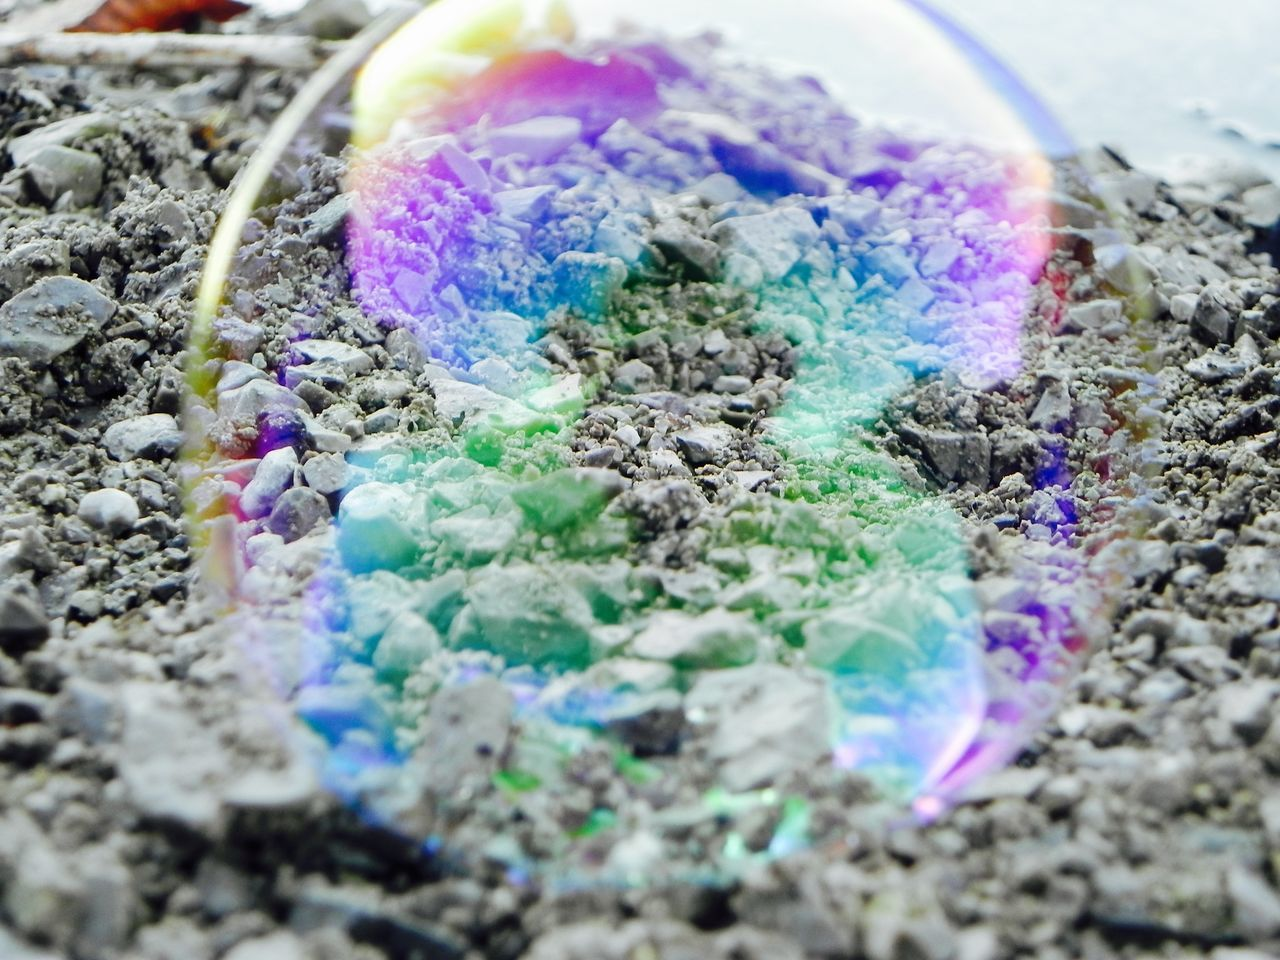 tough bubble Bubble Childhood Memories Close-up Colors Day Daydream Dream Fragile Fragility Iridescent  Mindfulness Multi Colored Nature No People Outdoors Painted Perfekt Moment Playful Round Soap Bubbles Stones Strong Tough Tough Bubble Wondering